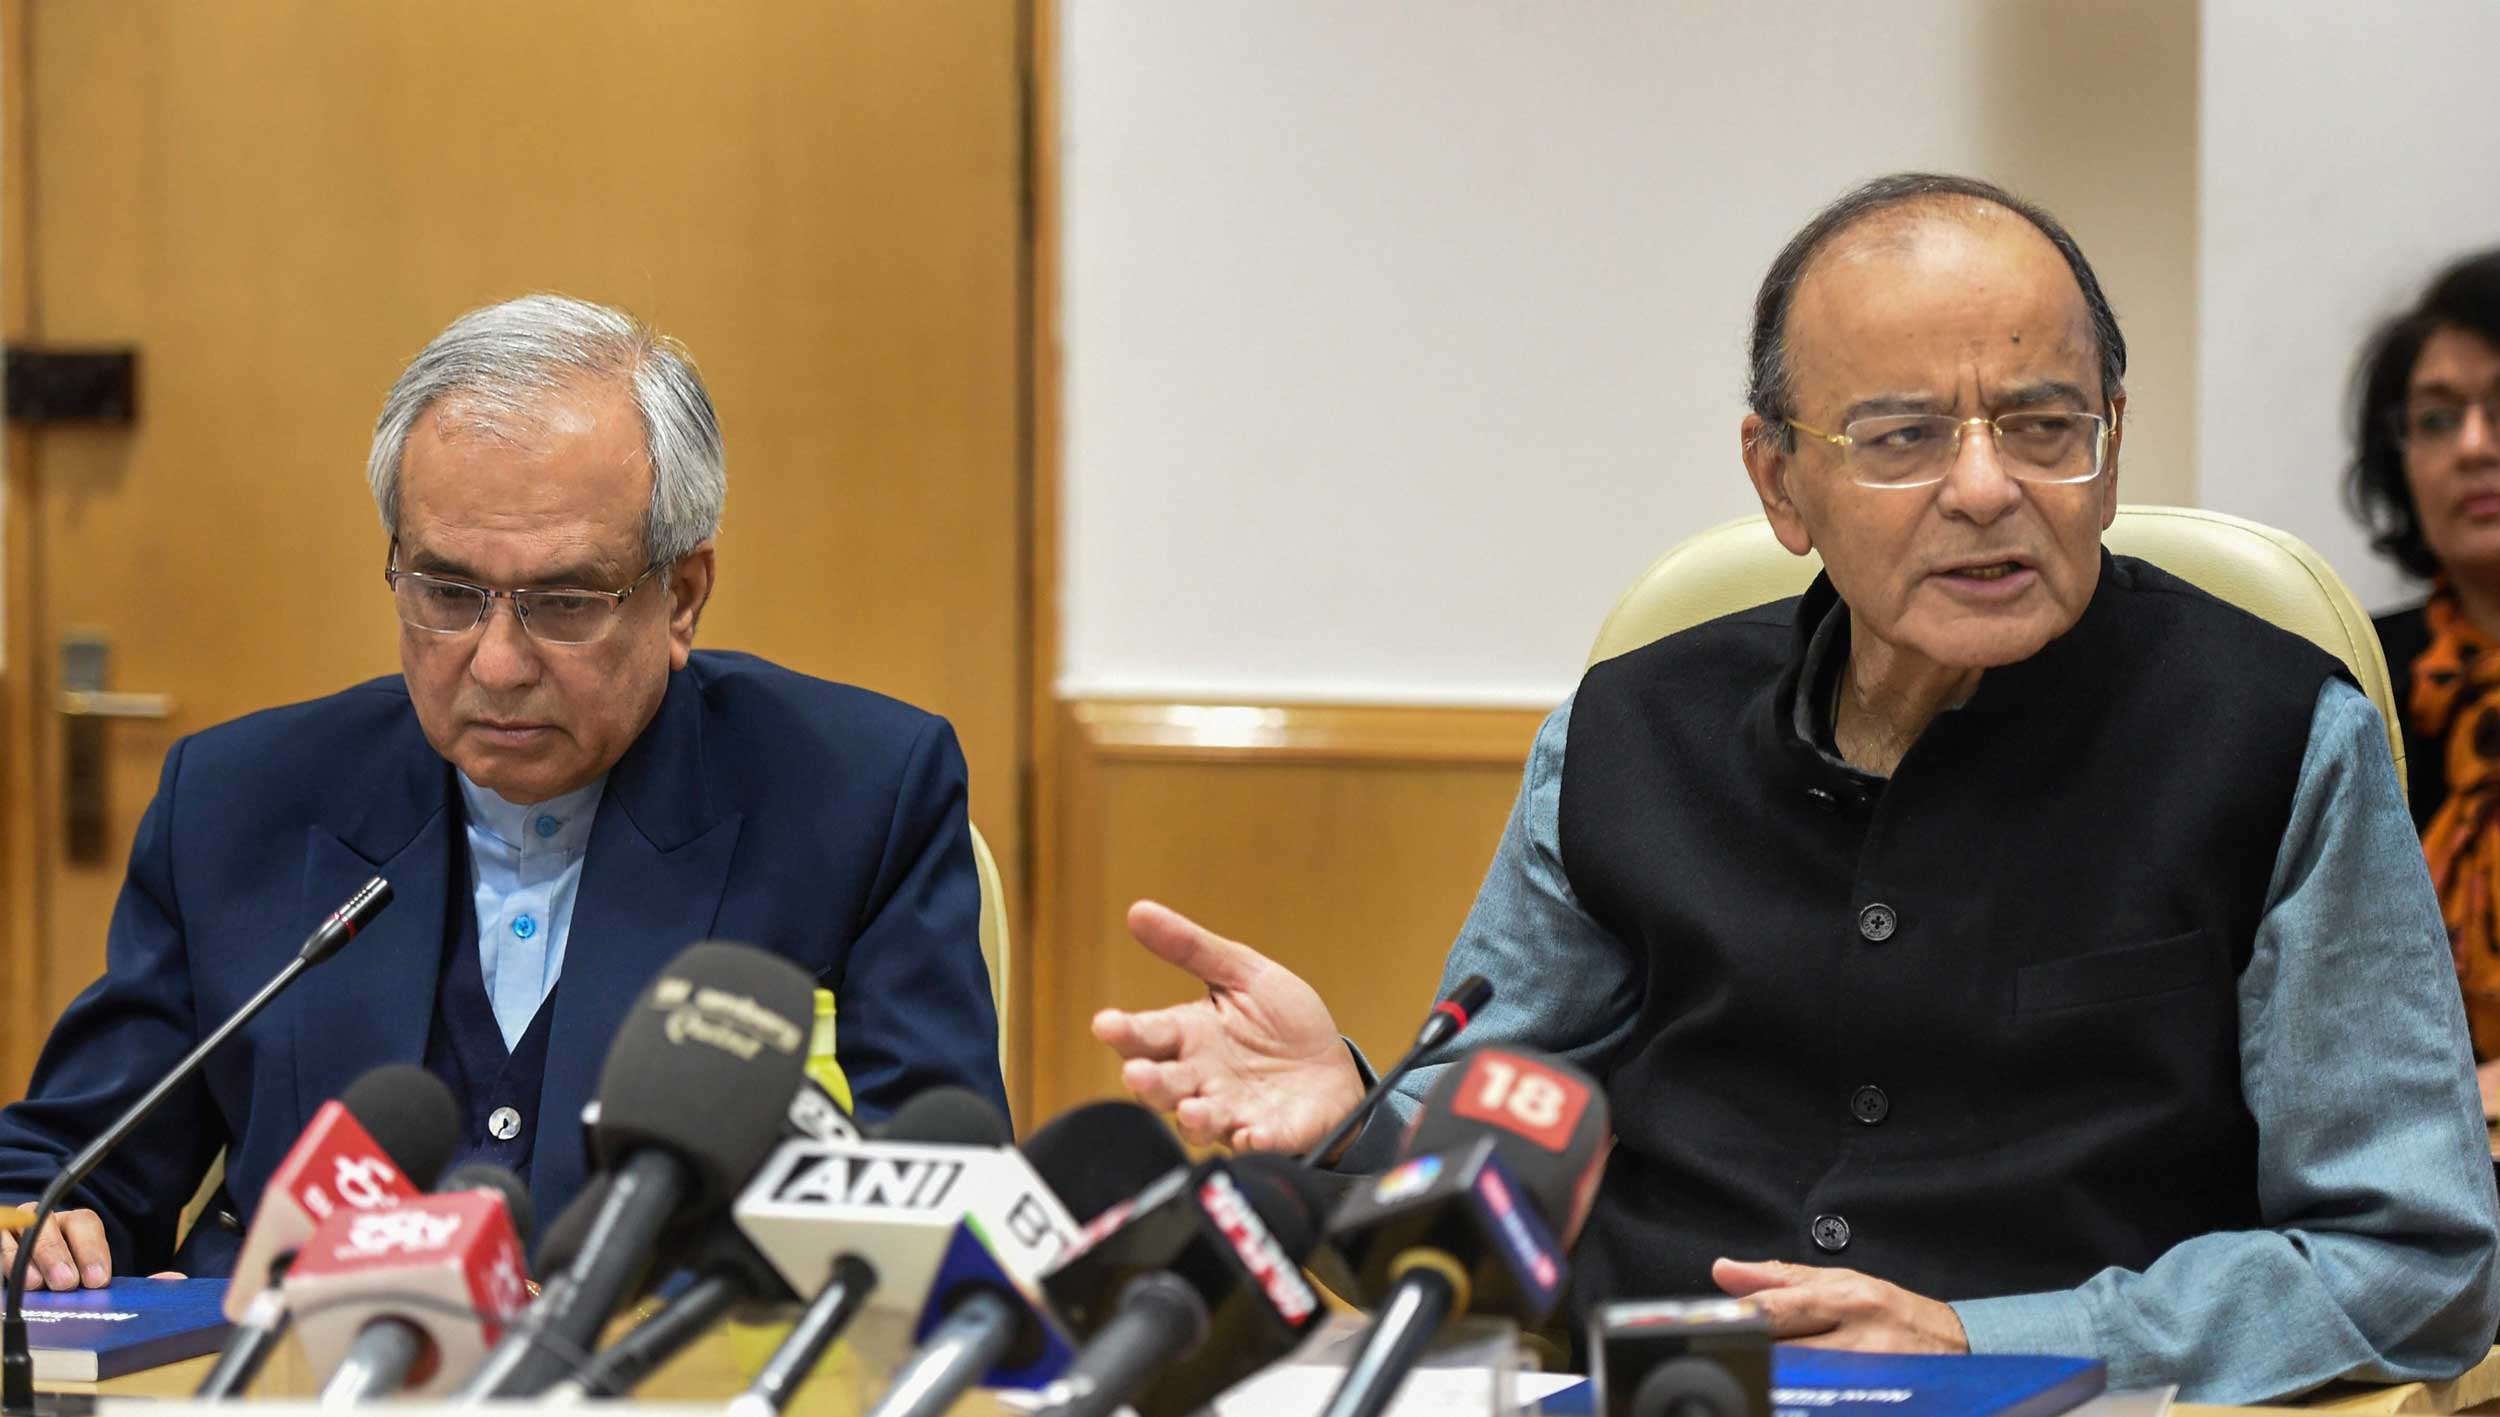 Finance minister Arun Jaitley with Niti Aayog vice-chairman Rajiv Kumar at a press conference after the release of the strategy document in New Delhi on December 19, 2018.